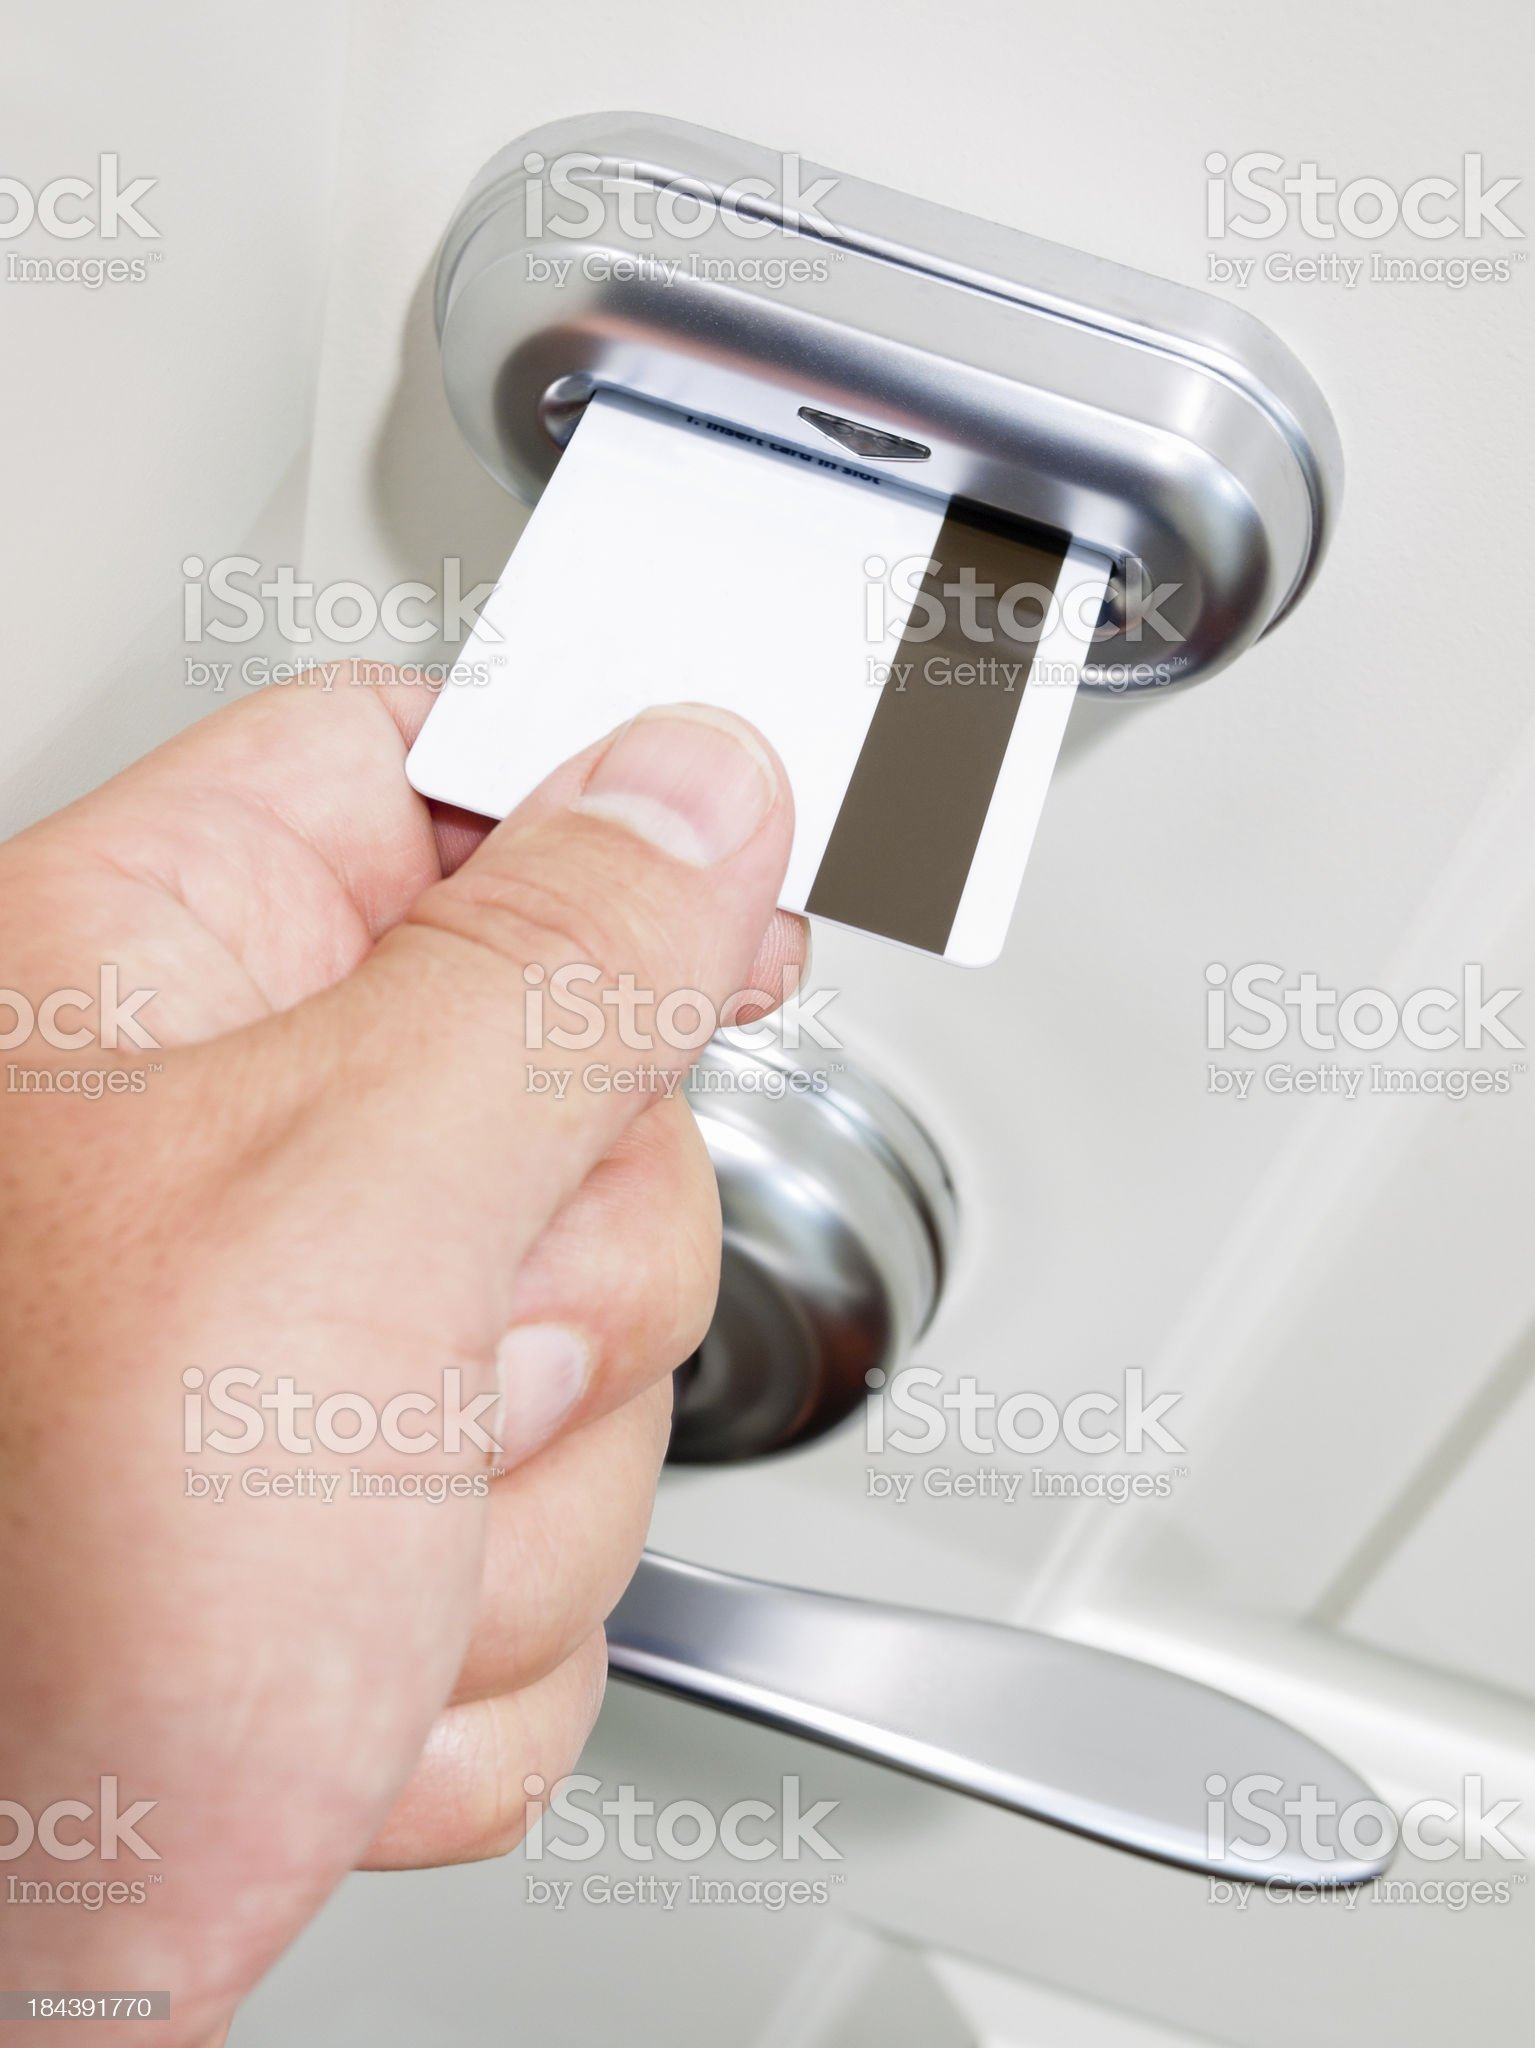 Hand Sliding Card Key Into Electronic Door Lock royalty-free stock photo